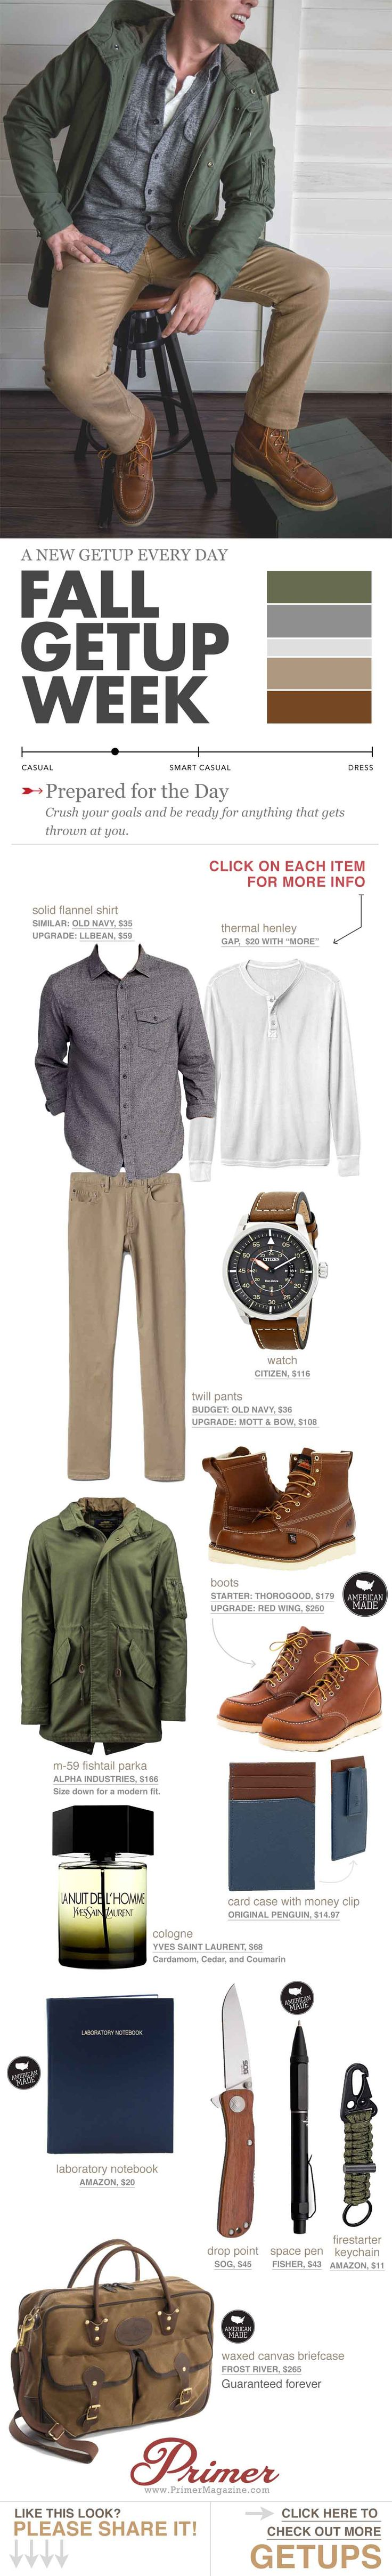 men's fall fashion inspiraiton rugged outfit - flannel with henley and boots - Tap the link to shop on our official online store! You can also join our affiliate and/or rewards programs for FREE!